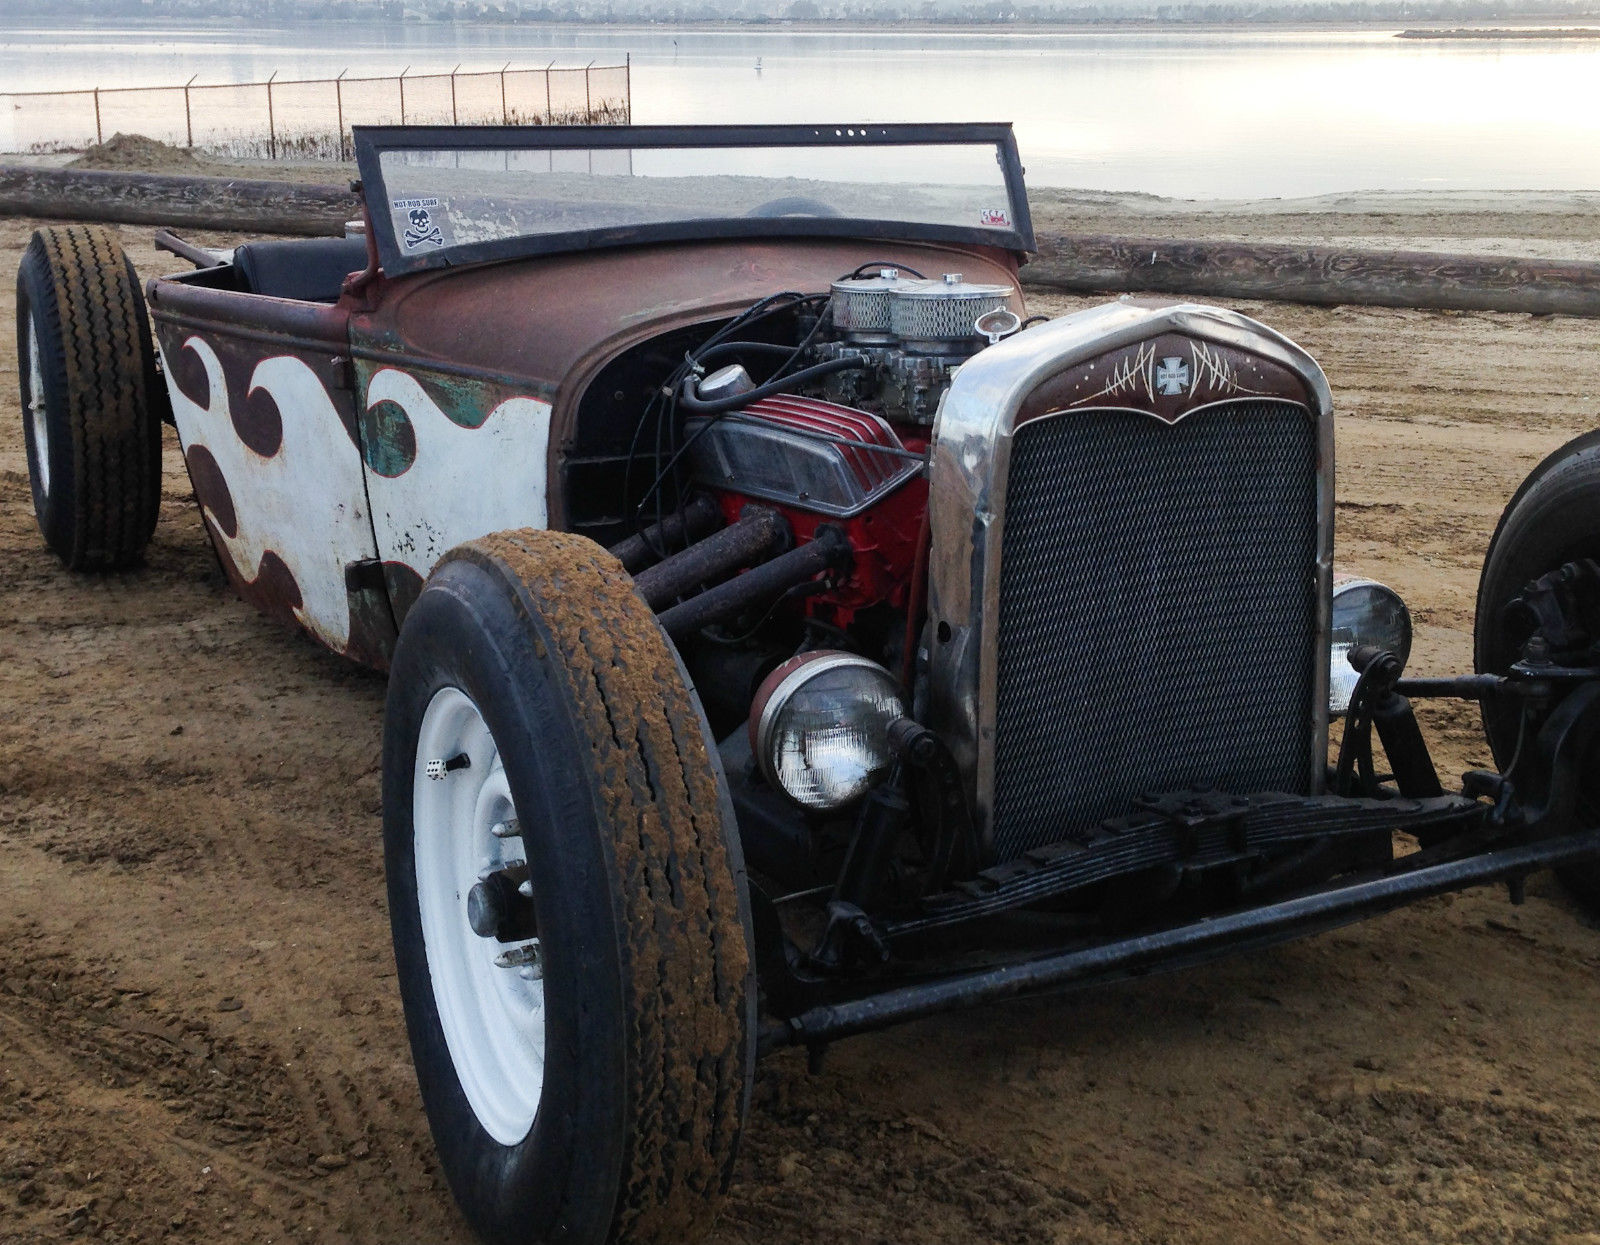 Ford Model A Hot Rod Truck Roadster Special 1929 1928 1930 1931 Rat Rod 32 Classic Ford Other Pickups 1928 For Sale